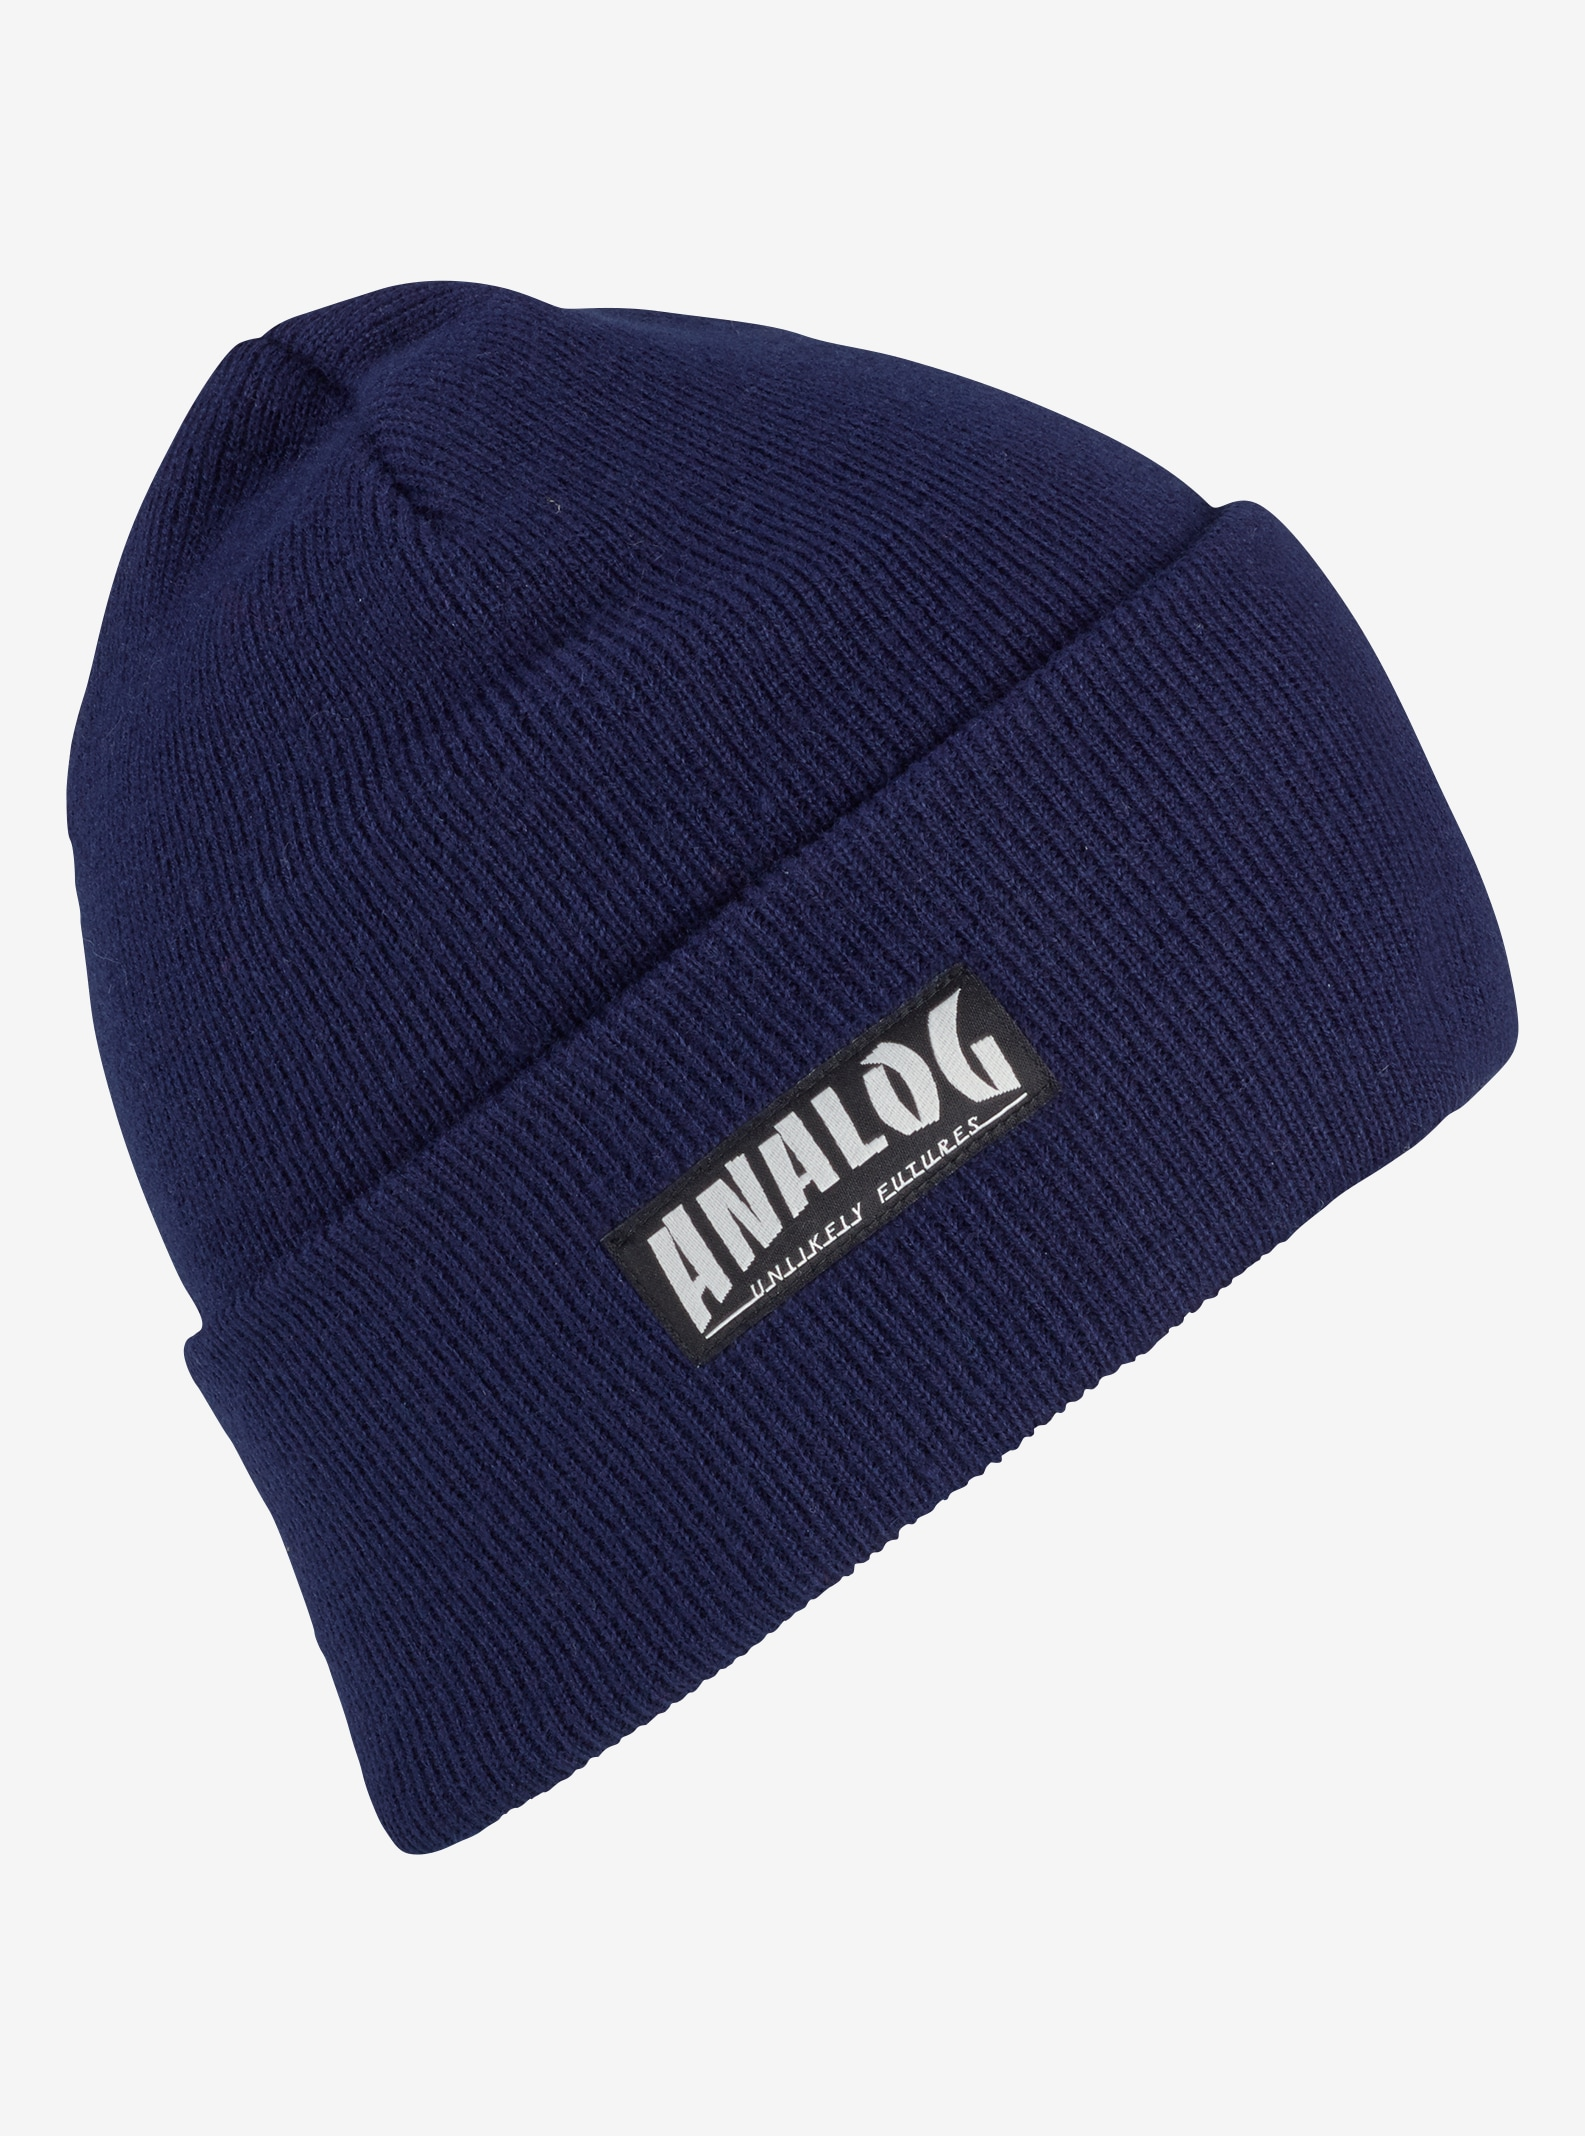 Men's Analog Chainlink Beanie shown in Deflate Gate